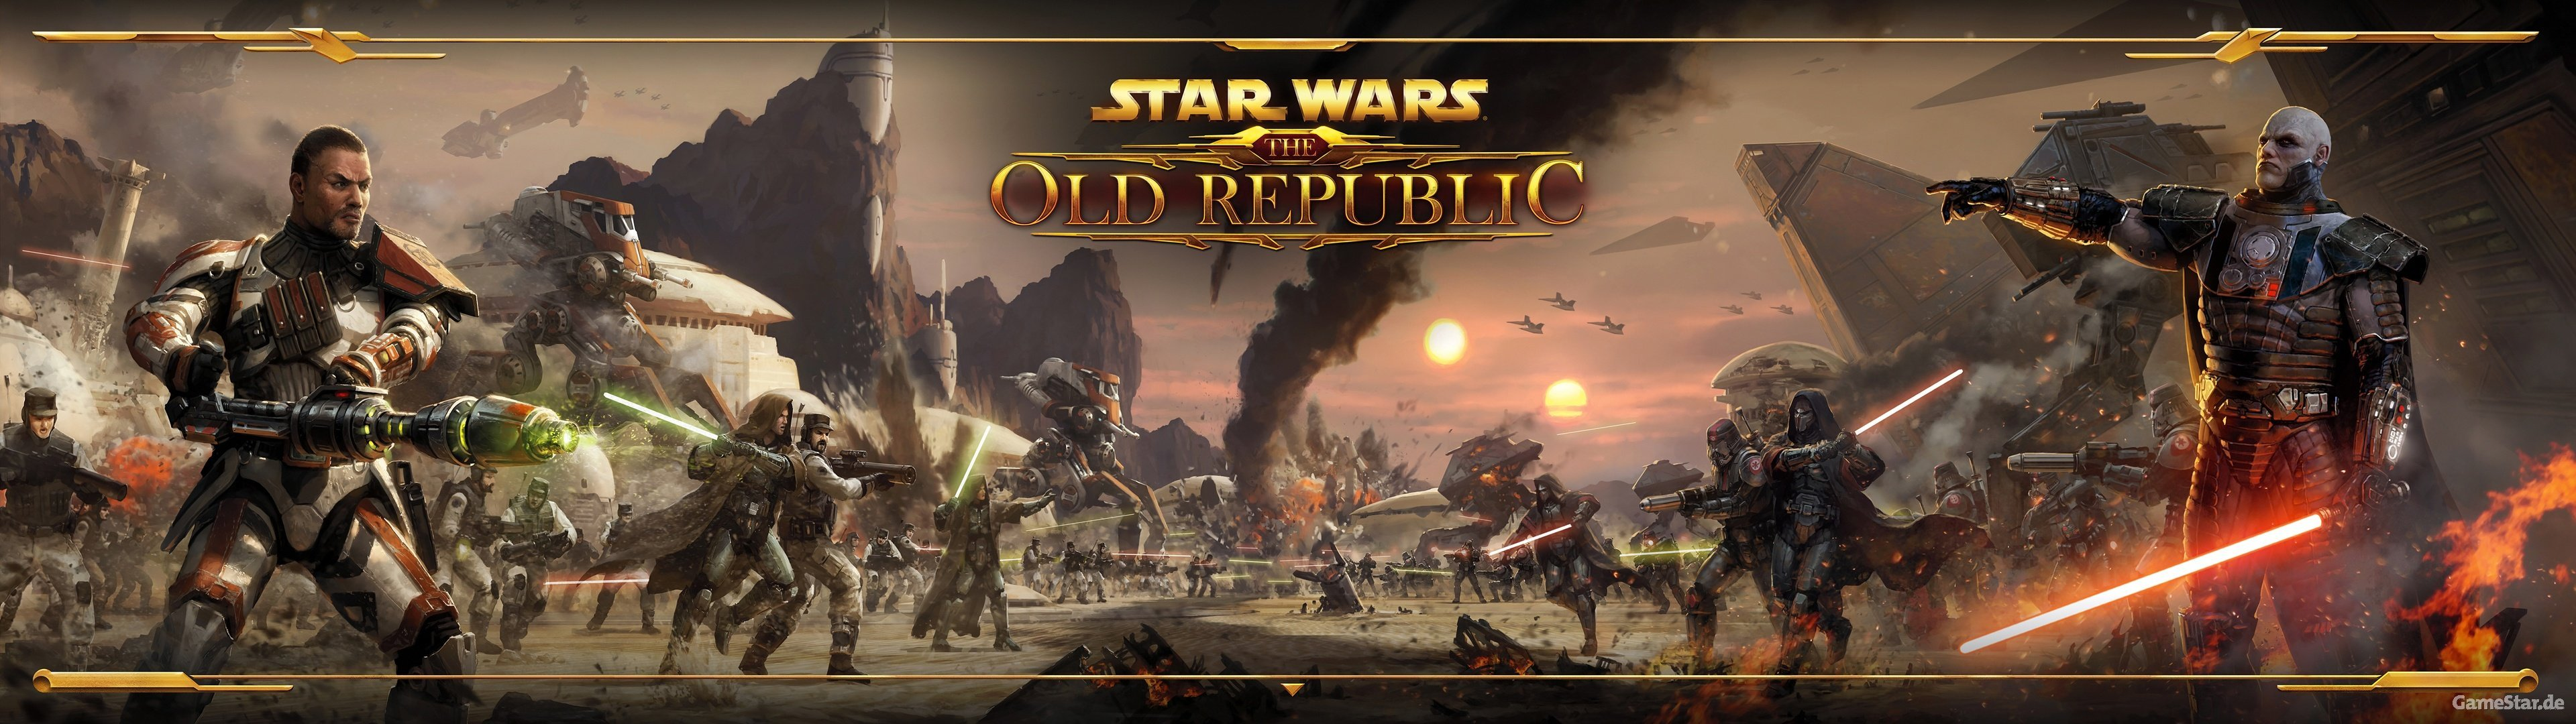 Star Wars Knights of the Old Republic v1.0.1 Apk ...